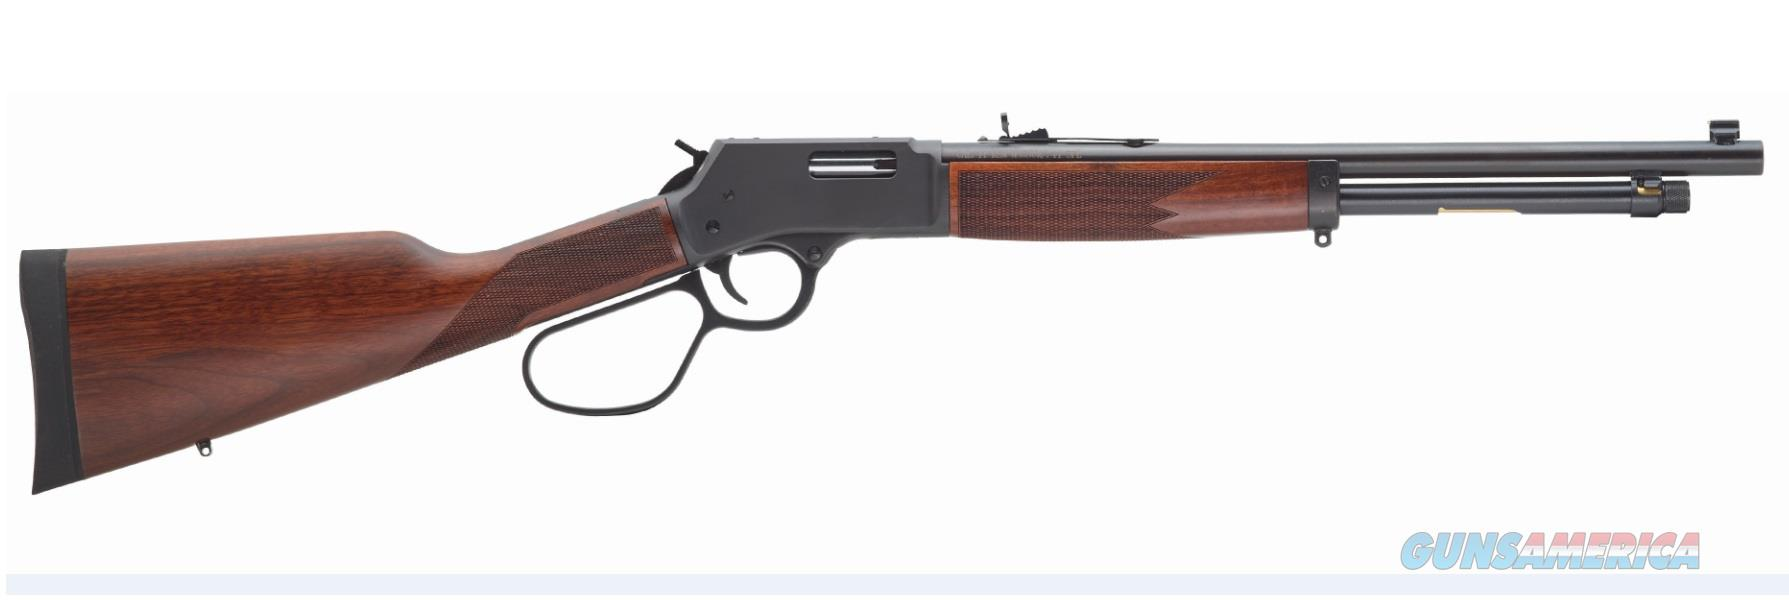 Henry Repeating Arms BIG BOY STEEL CARBINE 327FED ROUND BARREL  Guns > Rifles > H Misc Rifles